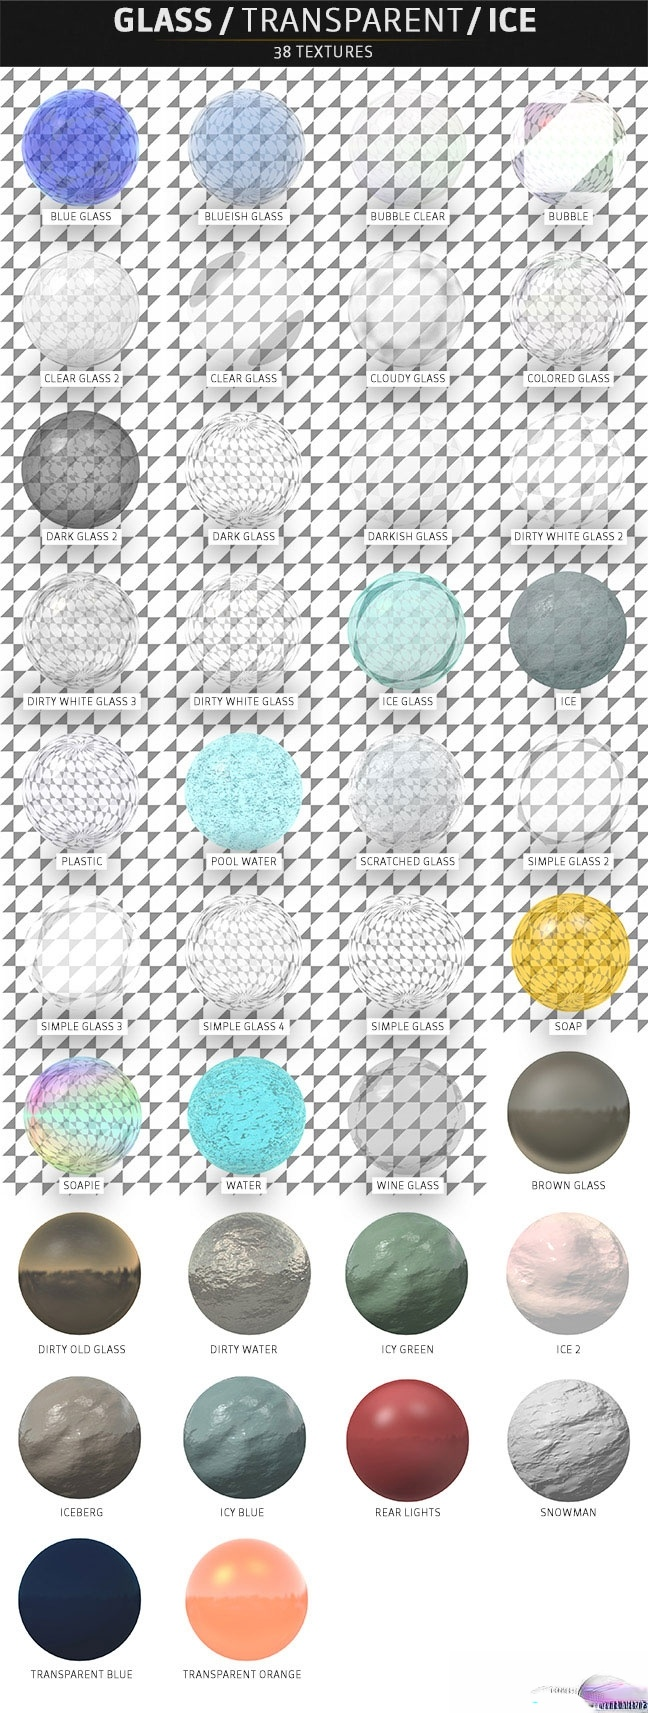 Glass-Transparent-Ice-Material-Pack-Element-3D-Textures.jpg